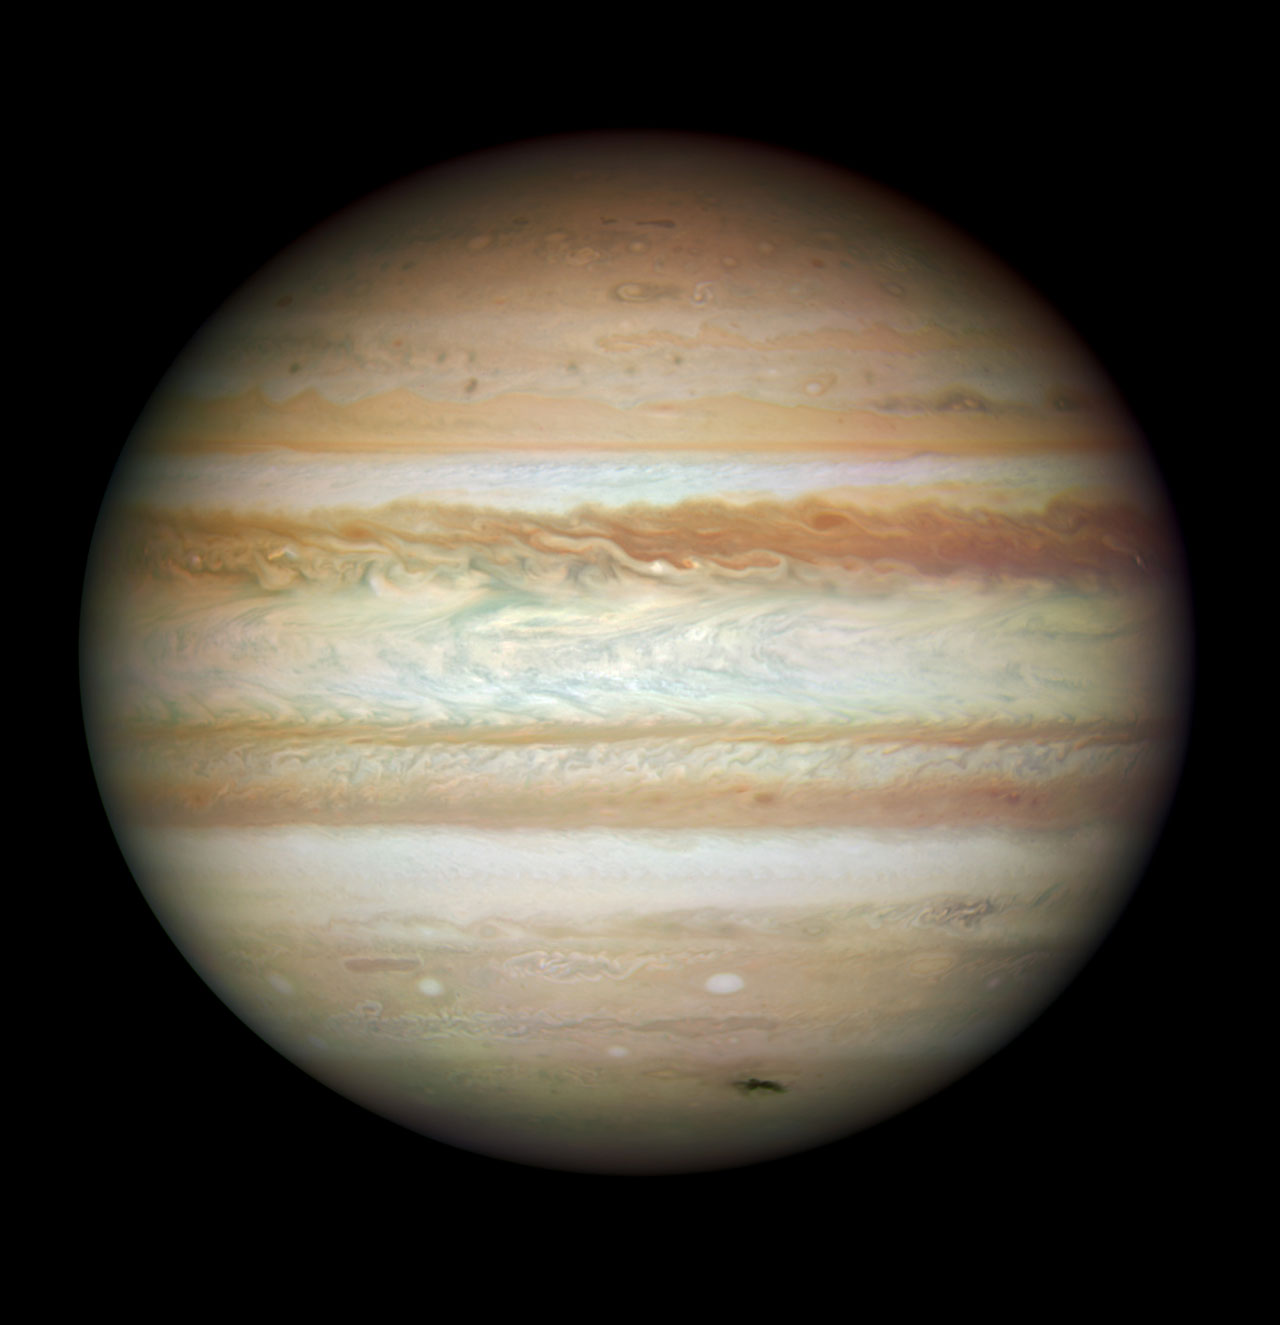 Real Pictures Of Jupiter The Planet Collision leave...